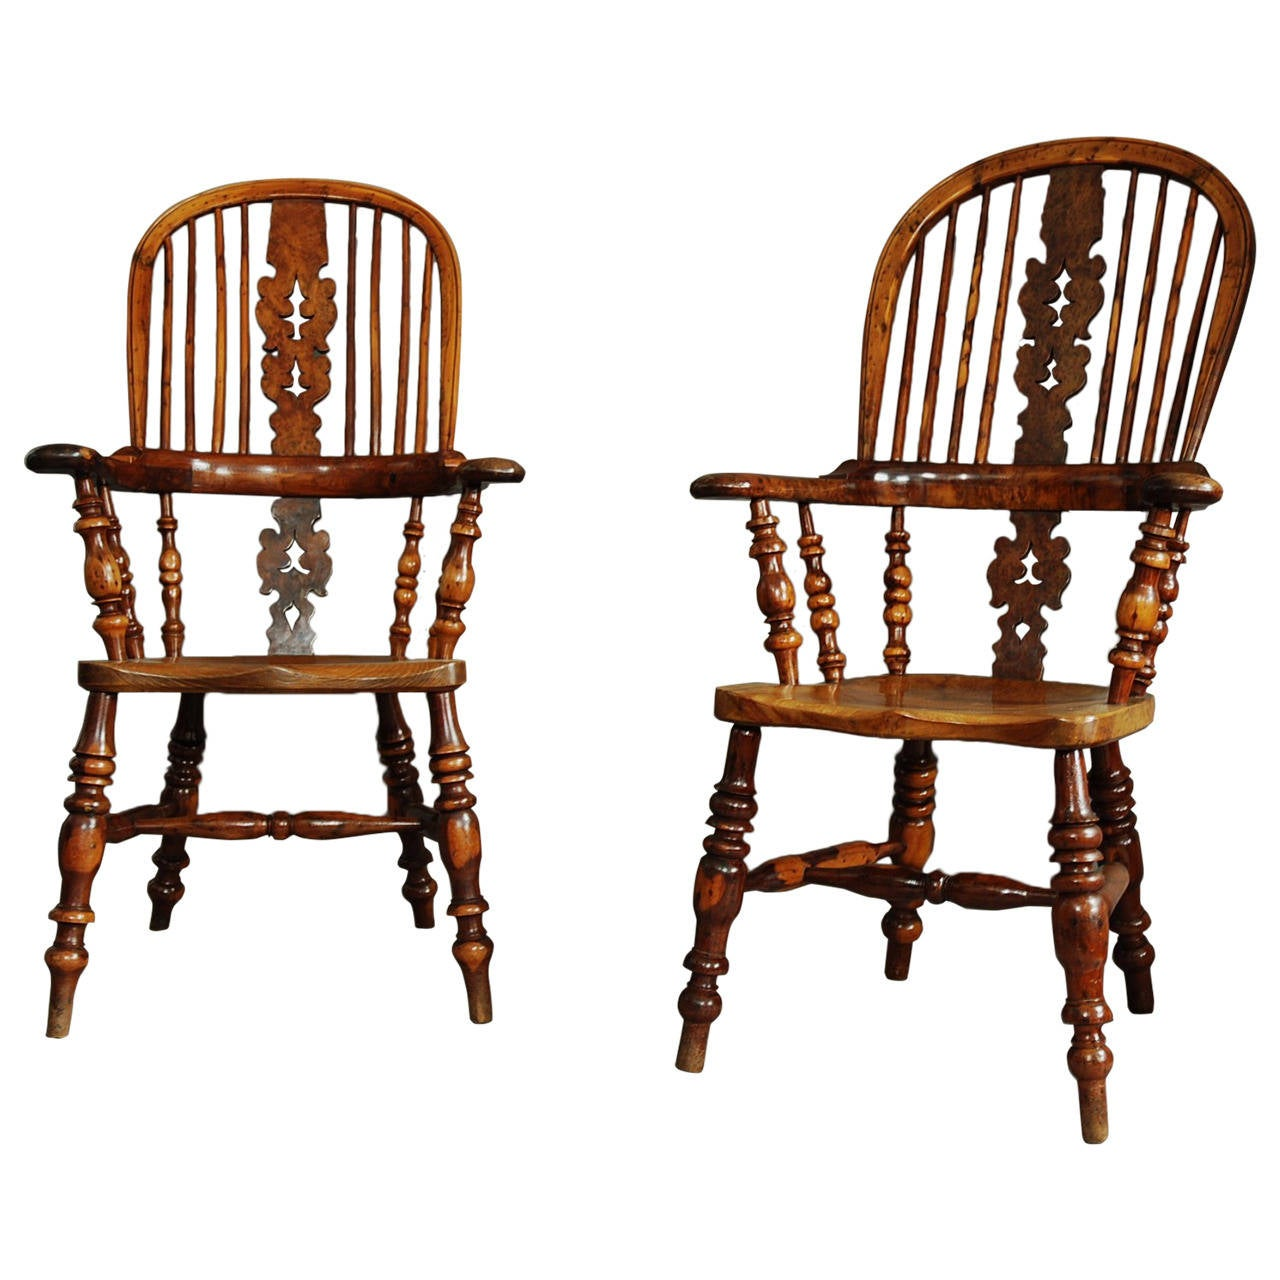 Pair Of Broad Arm Burr Yew Wood High Back Windsor Chairs